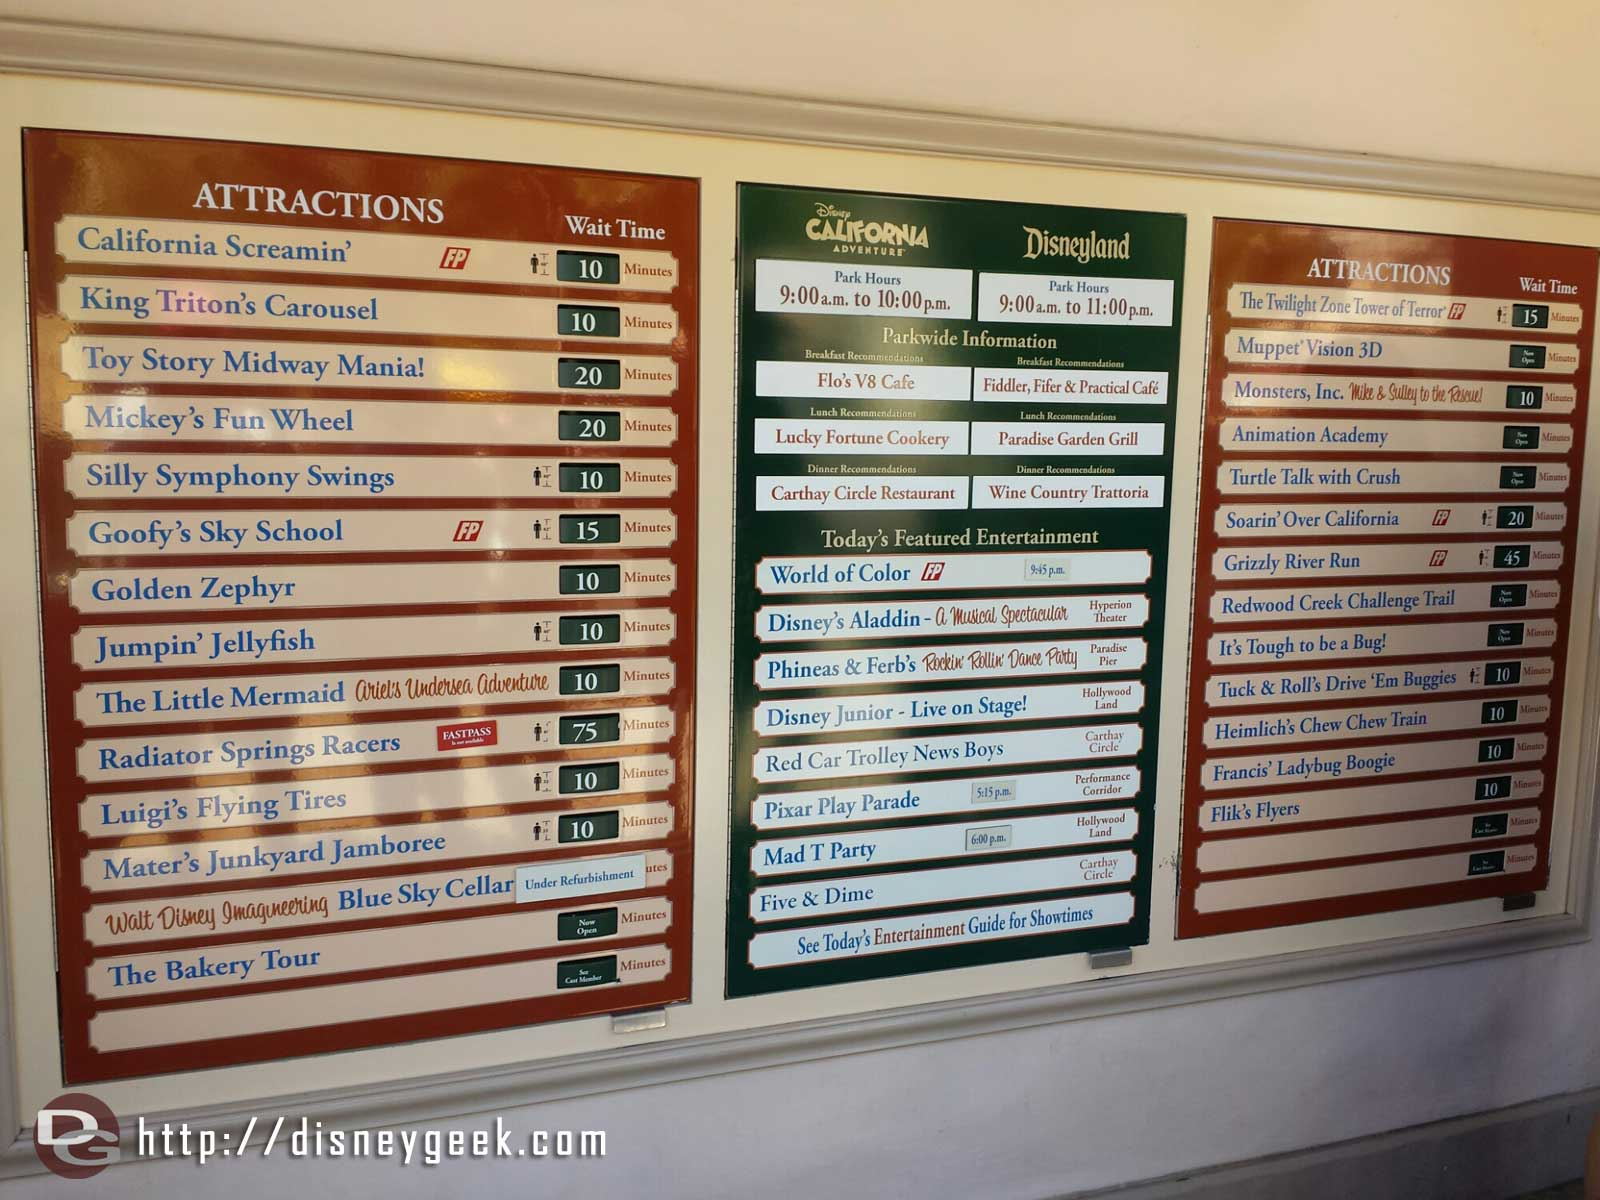 Disney California Adventure waits as of 1:39pm